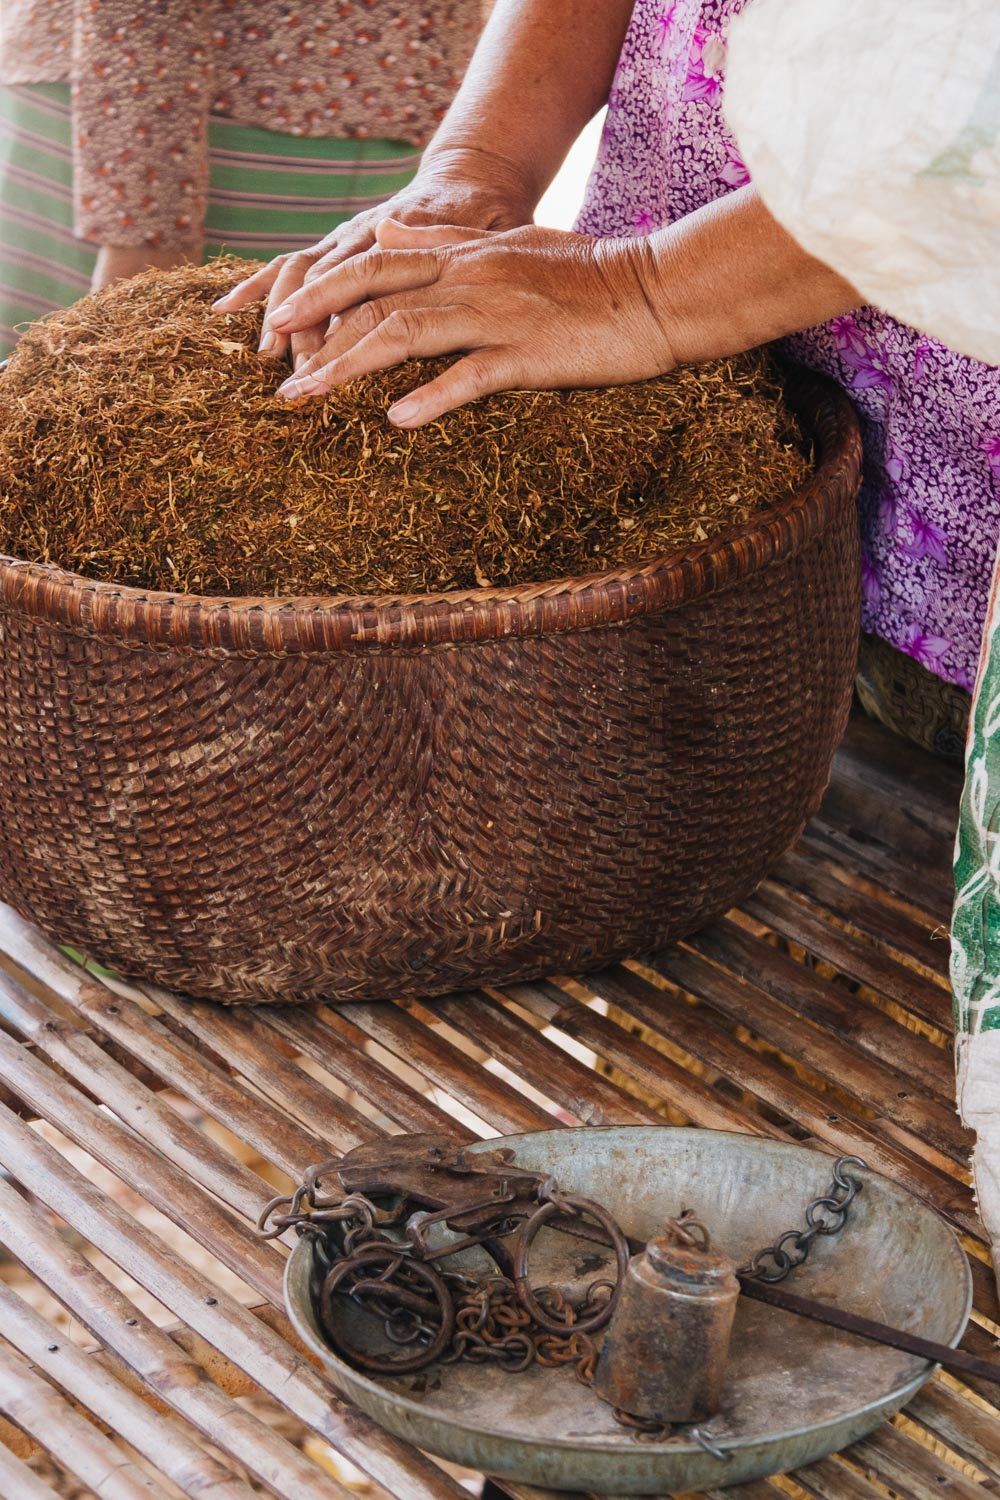 A woman sells her homegrown tobacco in a village in rural Cambodia